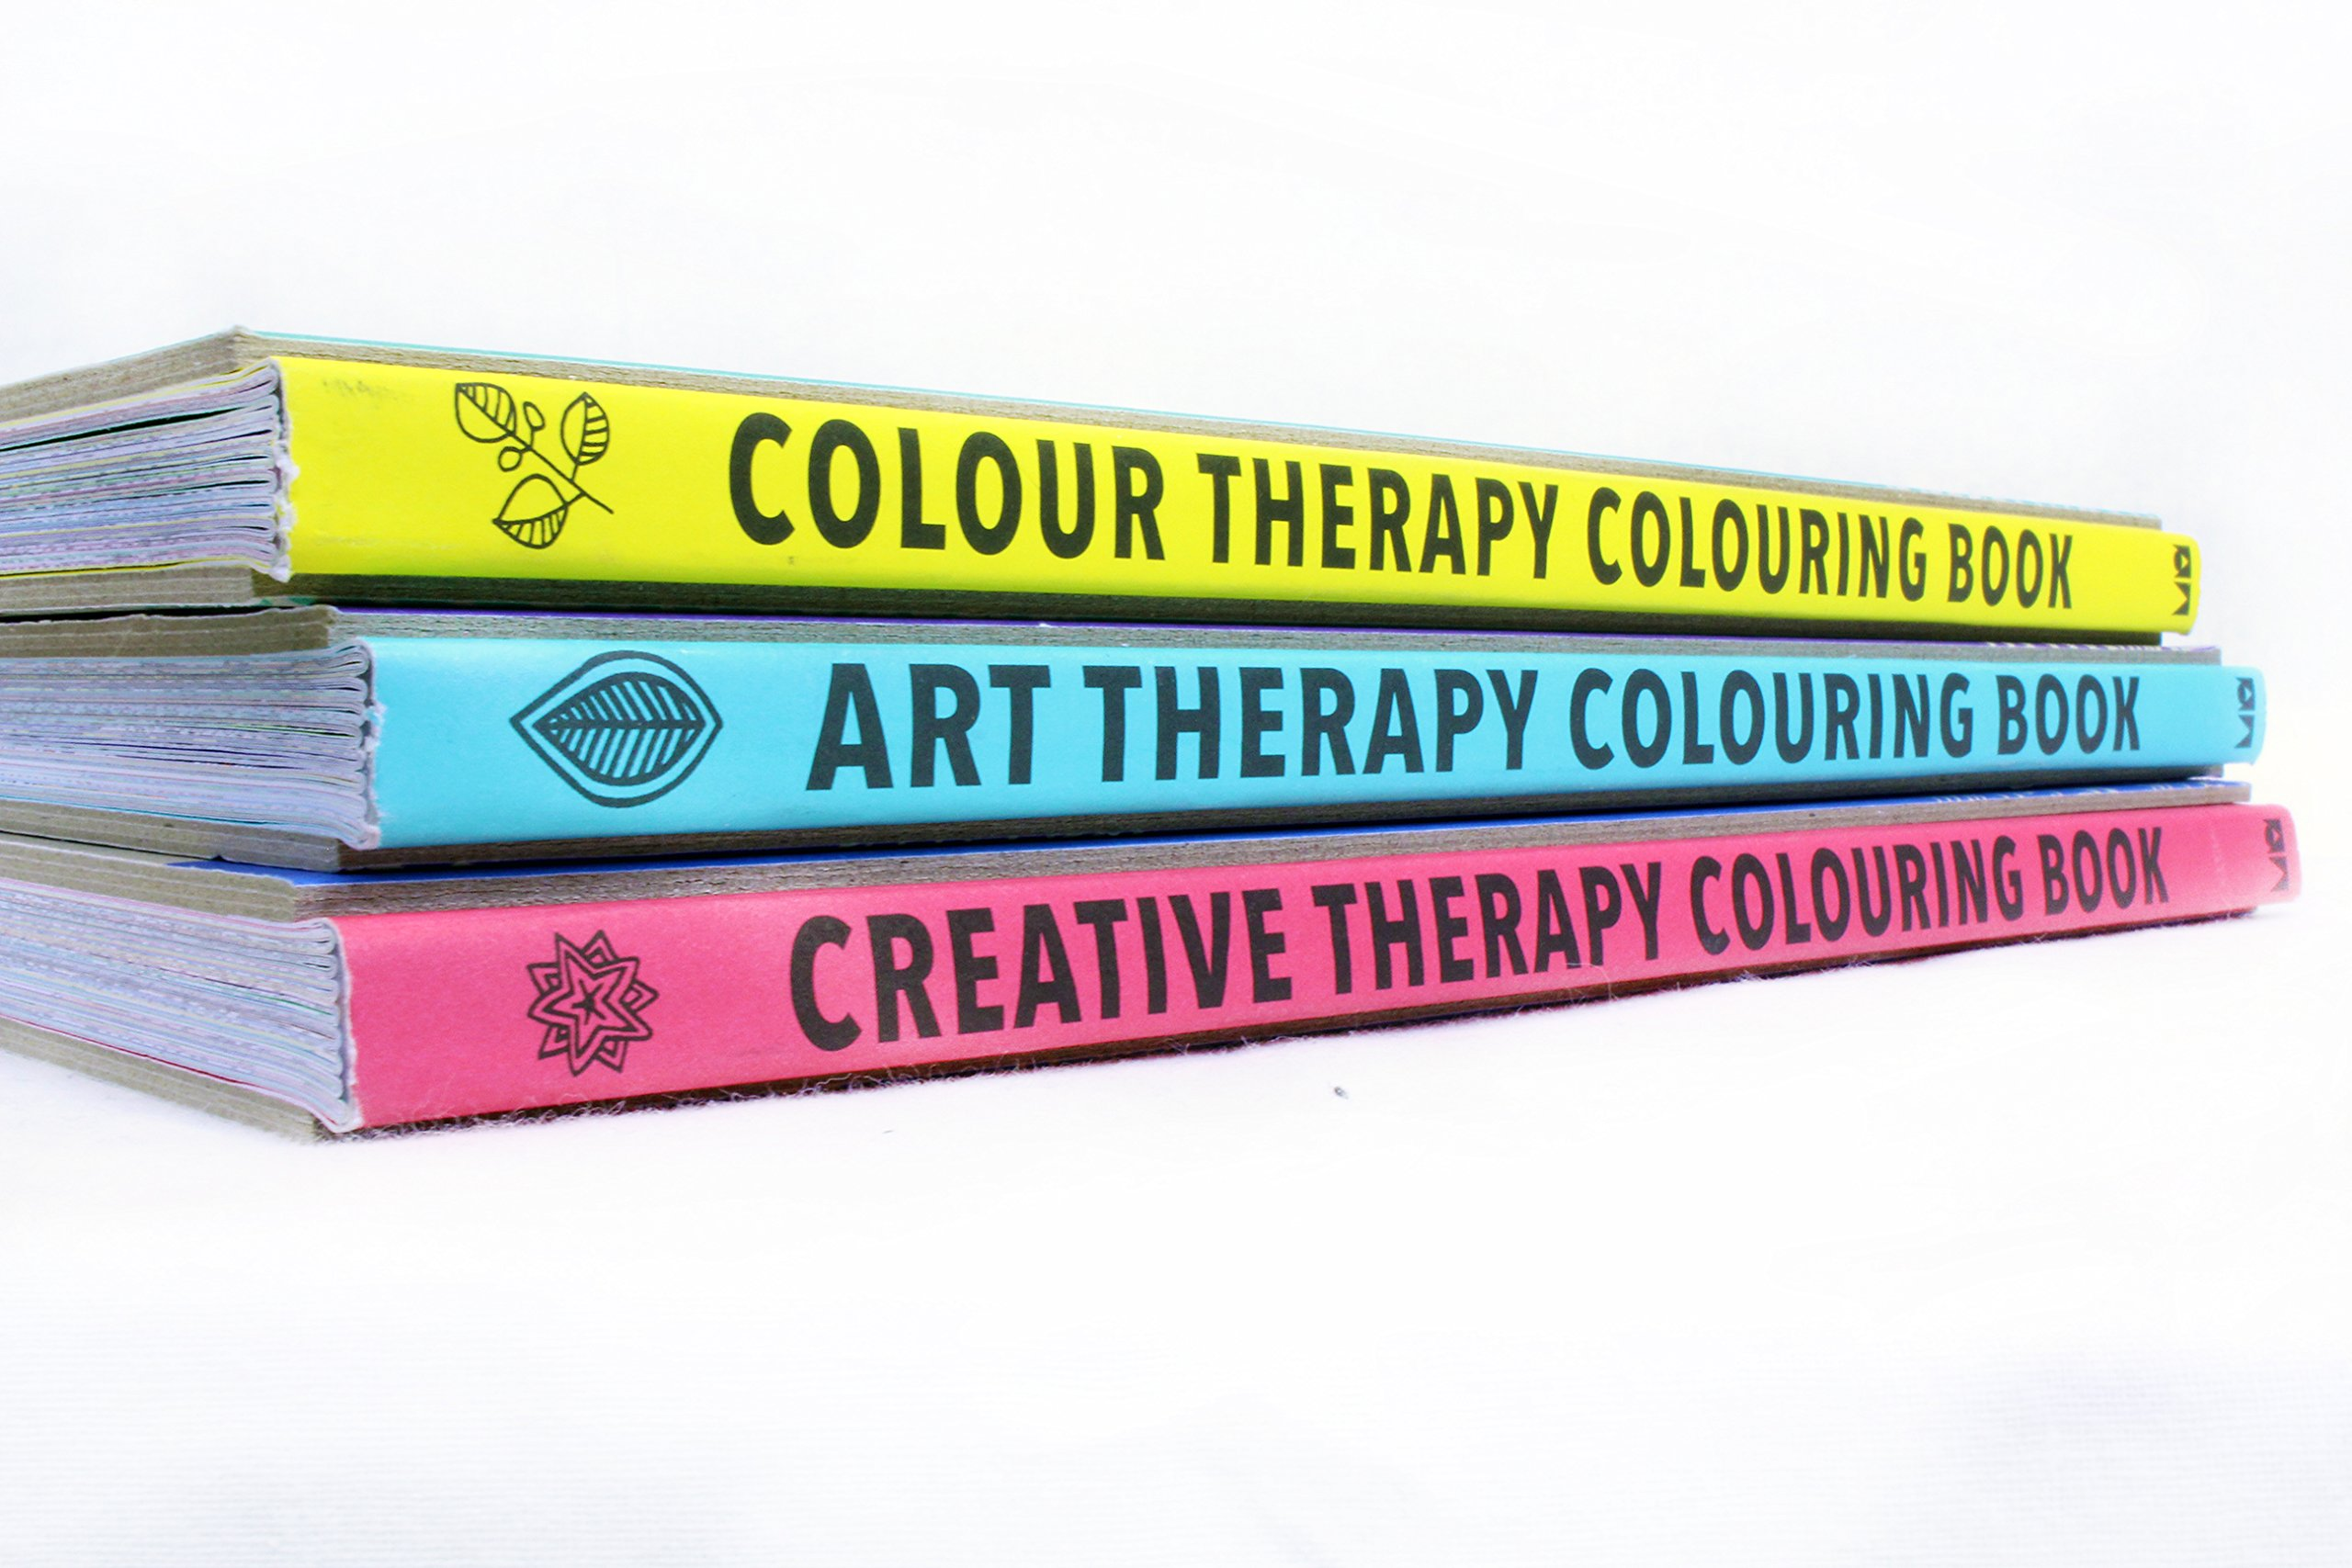 Art therapy coloring book michael omara - The Art Colour Creative Therapy Anti Stress Adult Colouring Books Collection The Art Therapy Colouring Book Colouring For Grown Ups Colour Therapy And